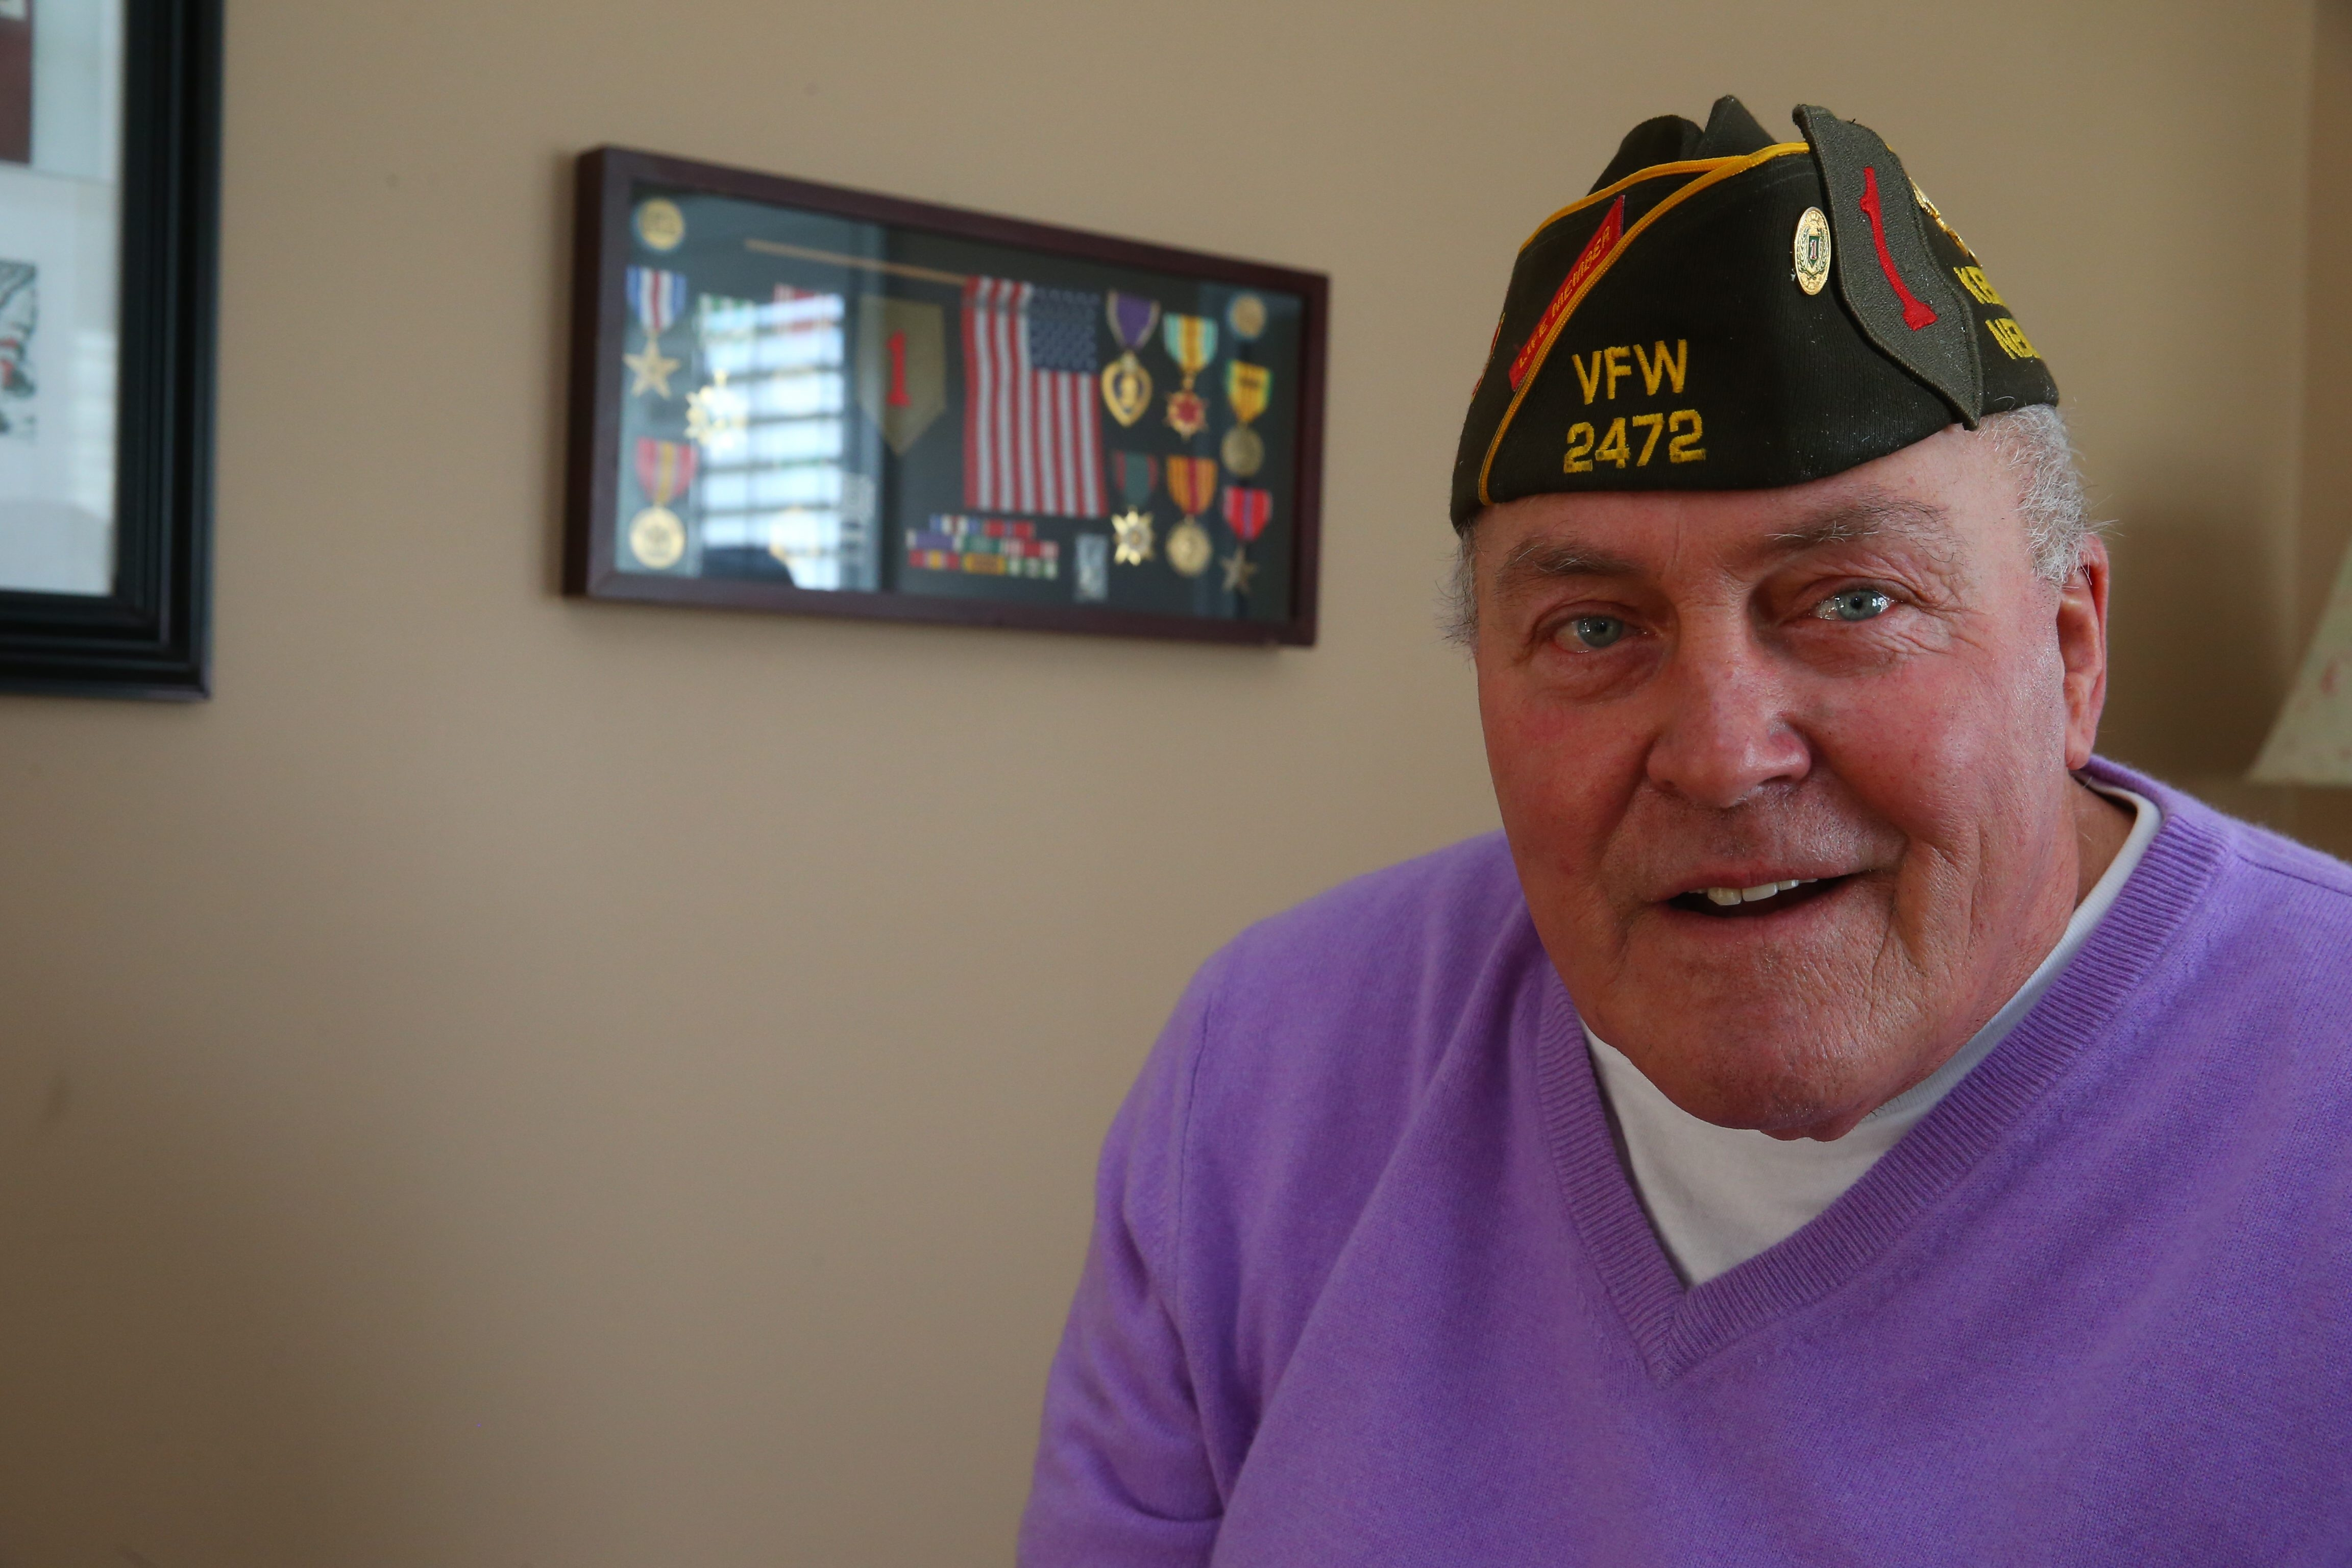 John Washington, wear- ing his VFW service cap, has his medals on display at Wheatfield home from heroic Vietnam service.